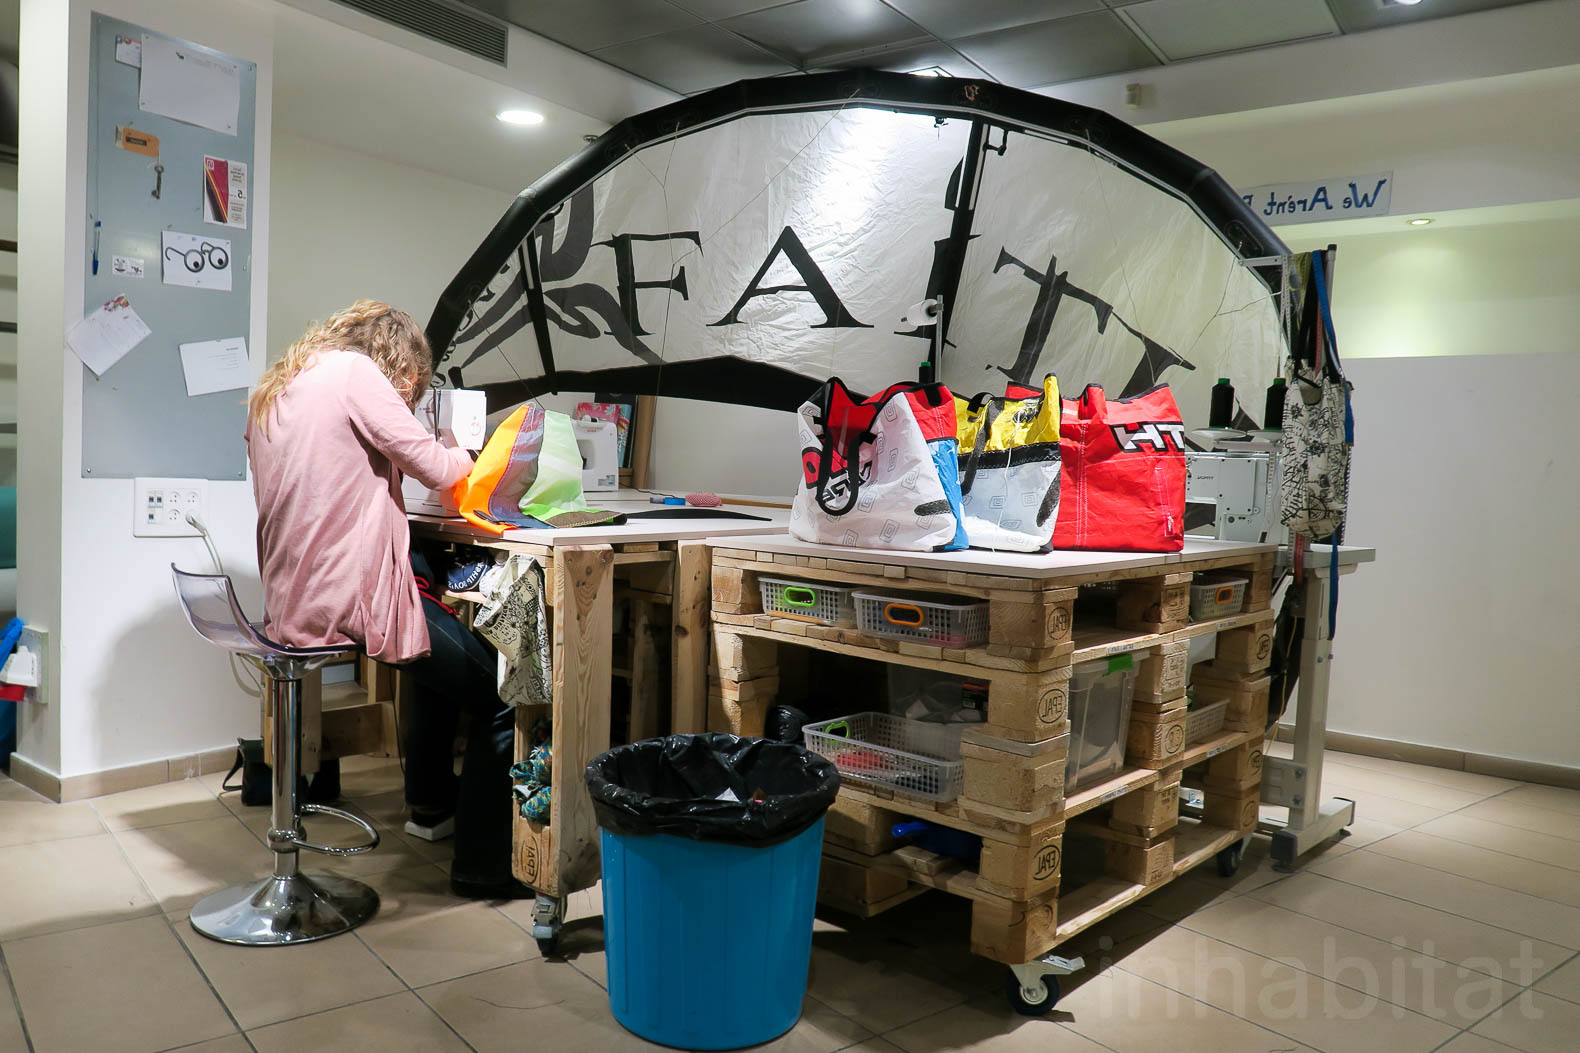 Upcycling studio in Tel Aviv gives former prostitutes a